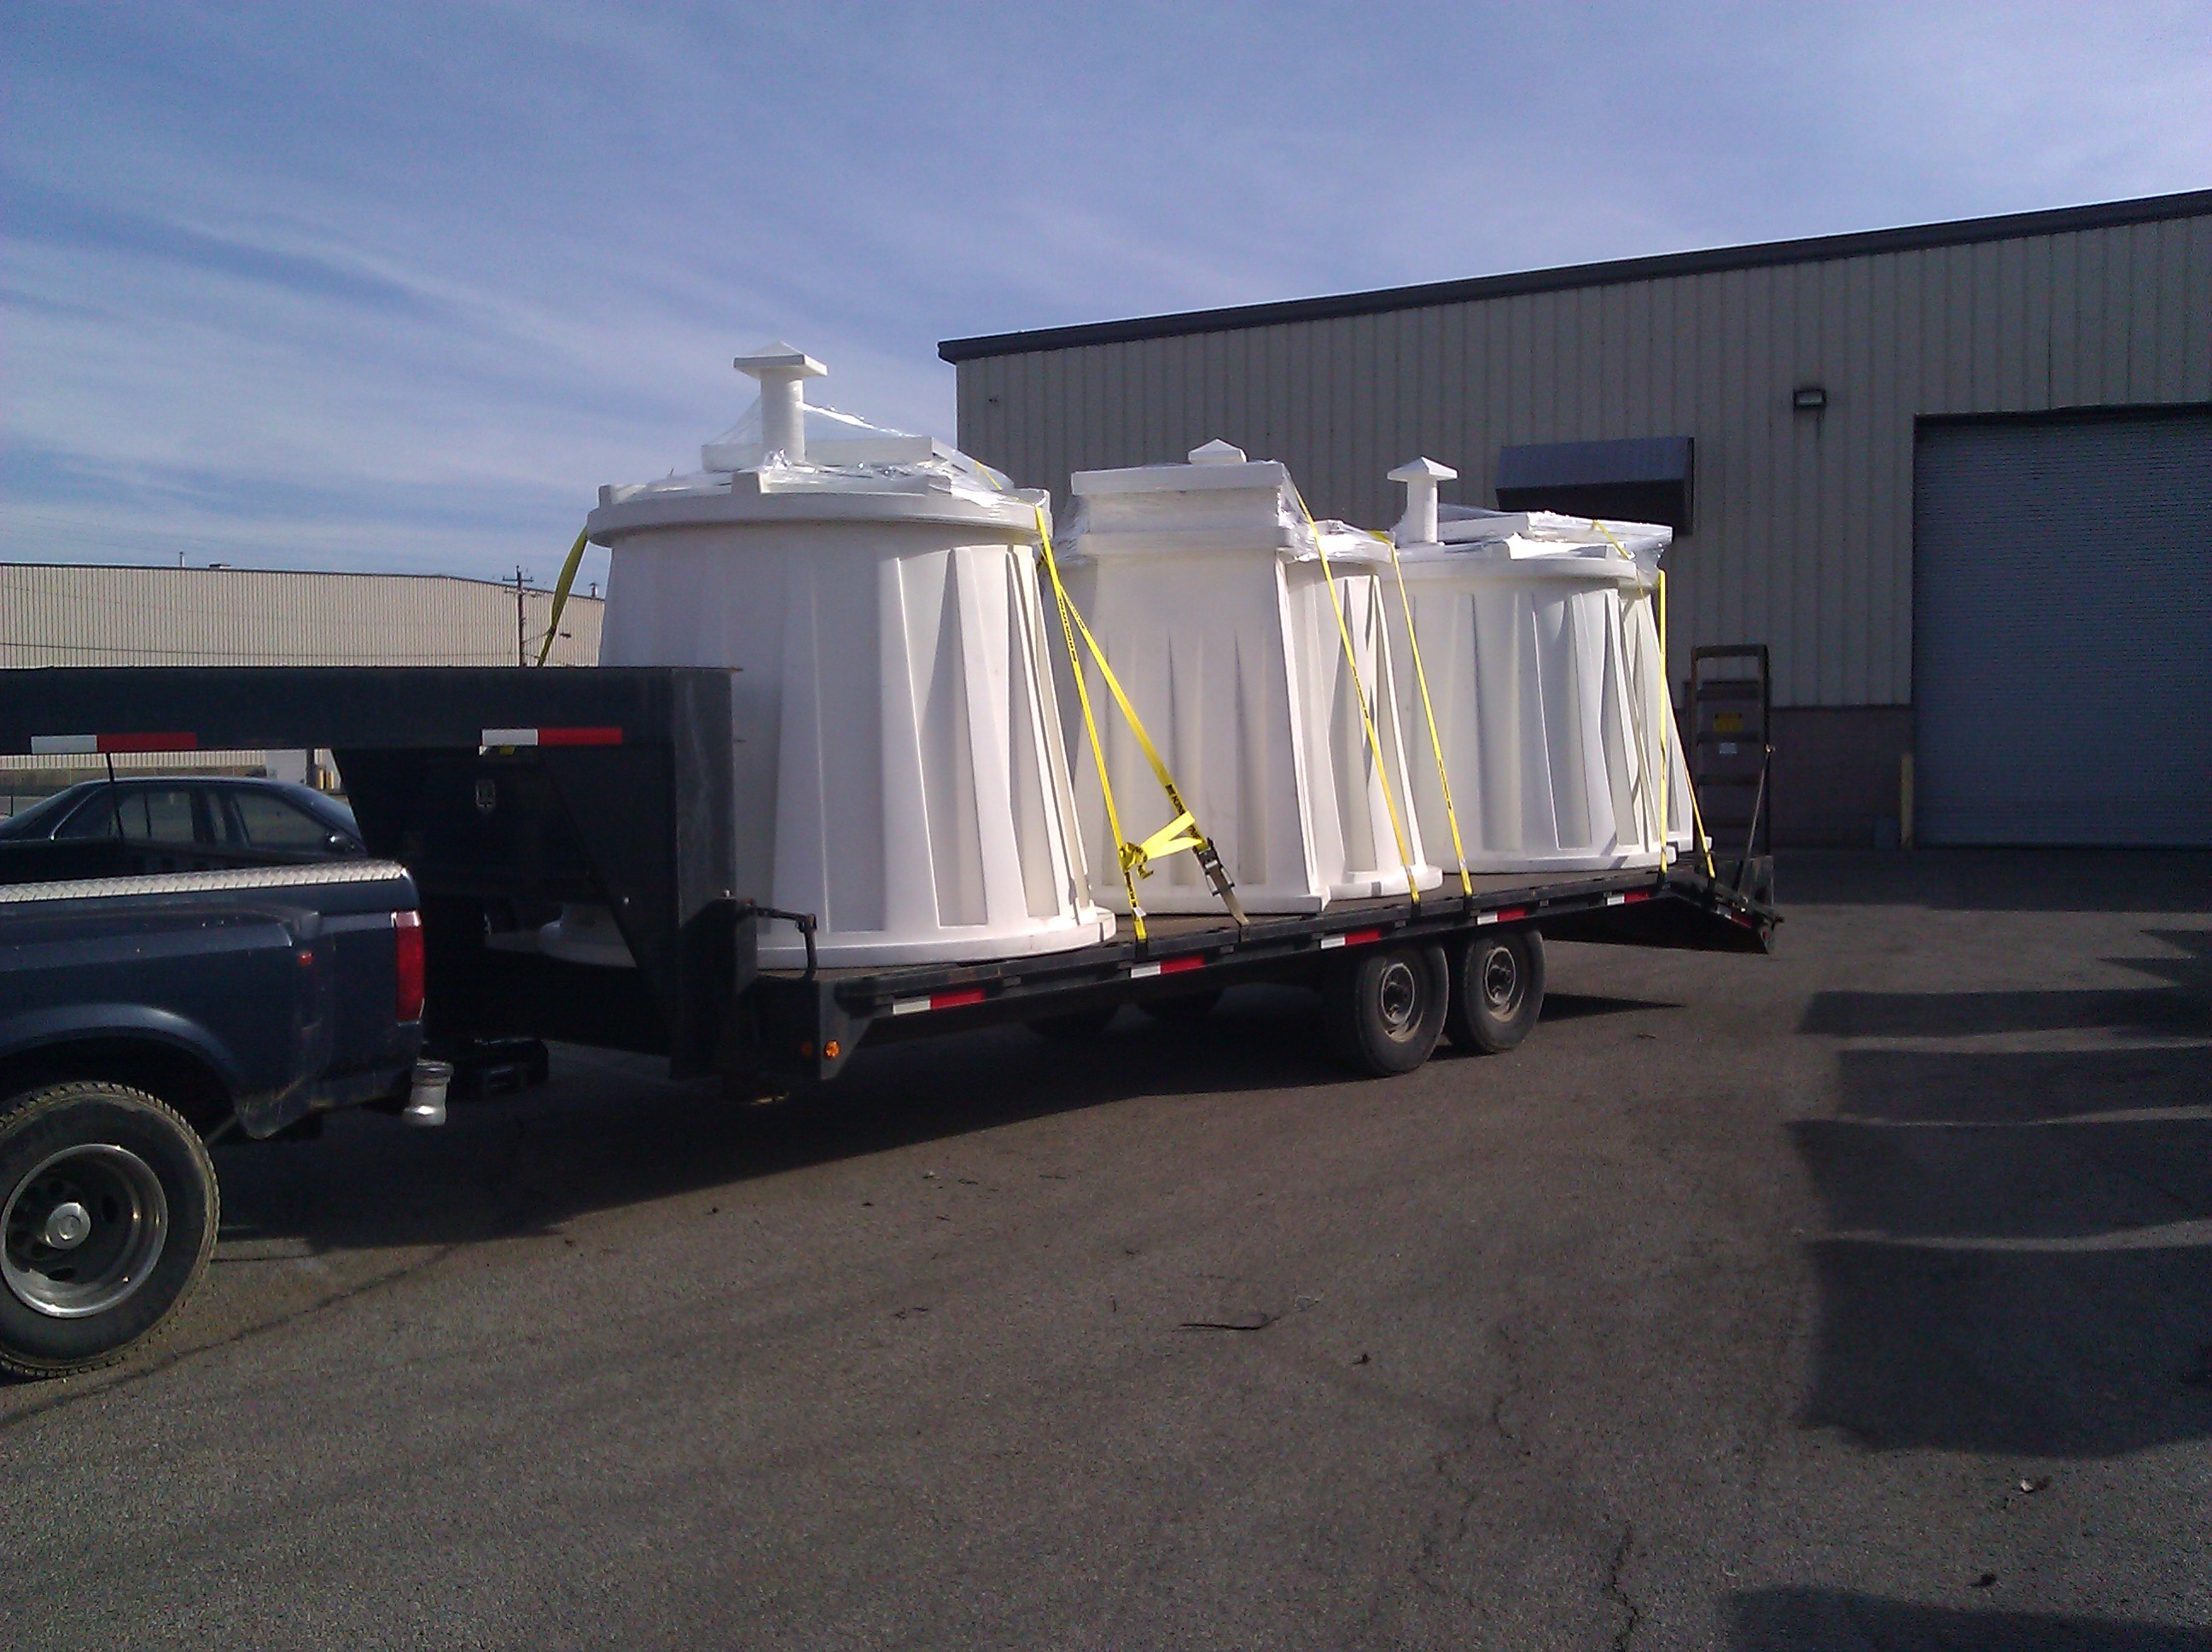 Tornado Shelters Being Picked Up, Tornado Shelter Dealers, OK Tornado Shelter Dealers